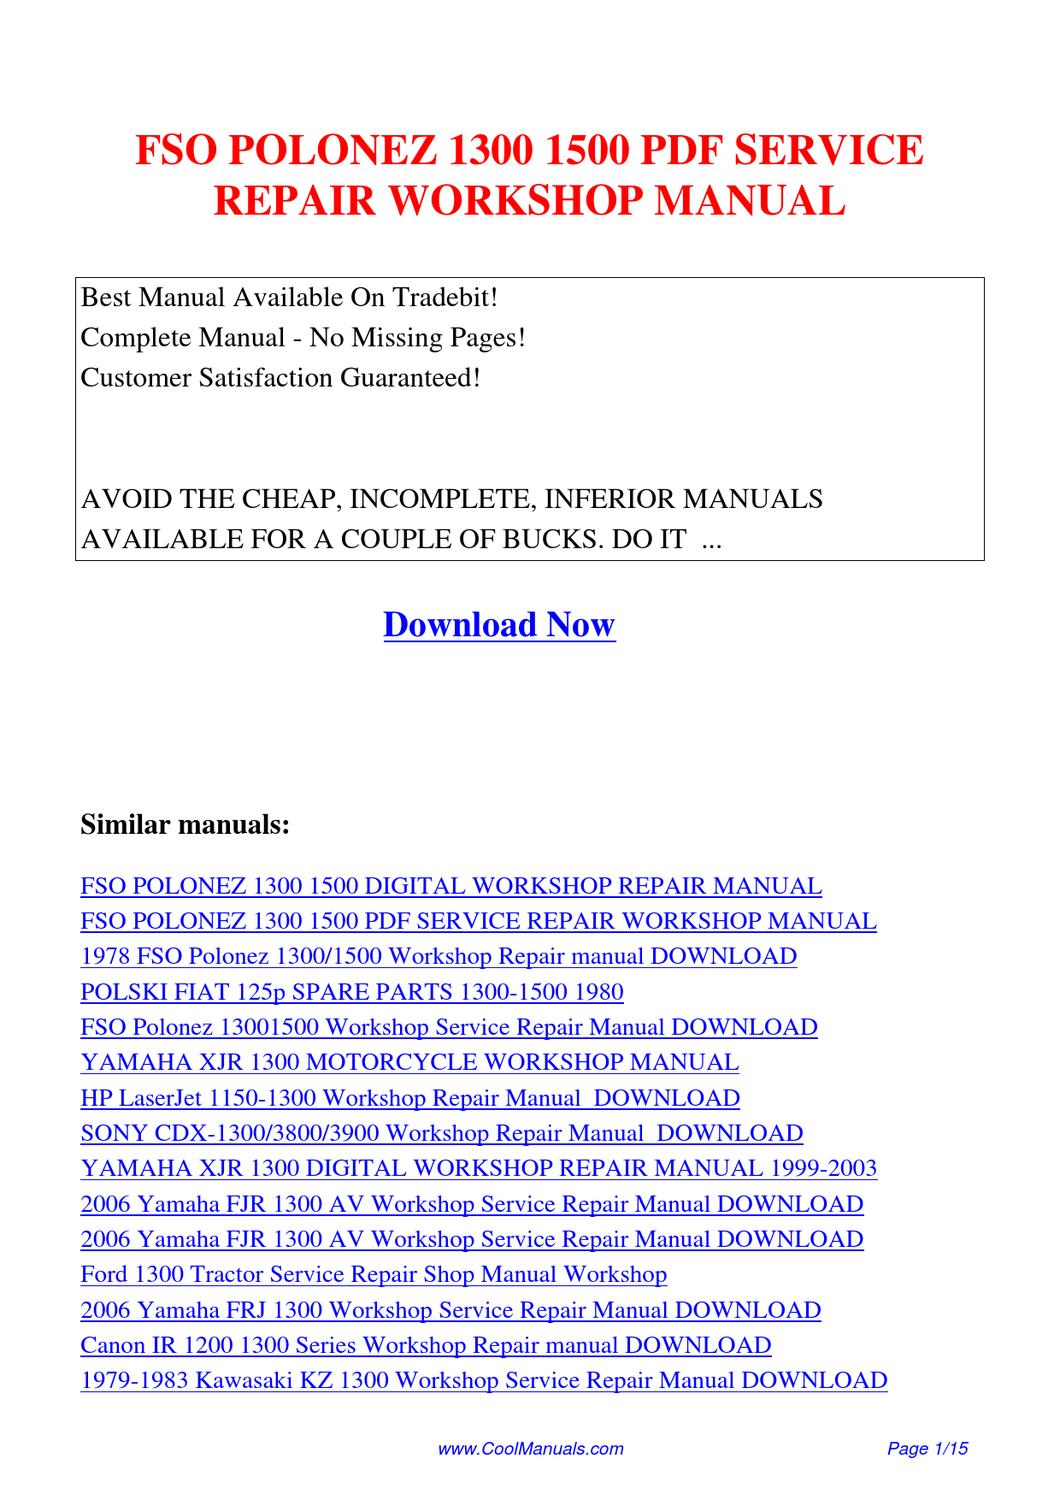 FSO_POLONEZ_1300_1500_SERVICE_REPAIR_WORKSHOP_MANUAL by Lan Huang - issuu